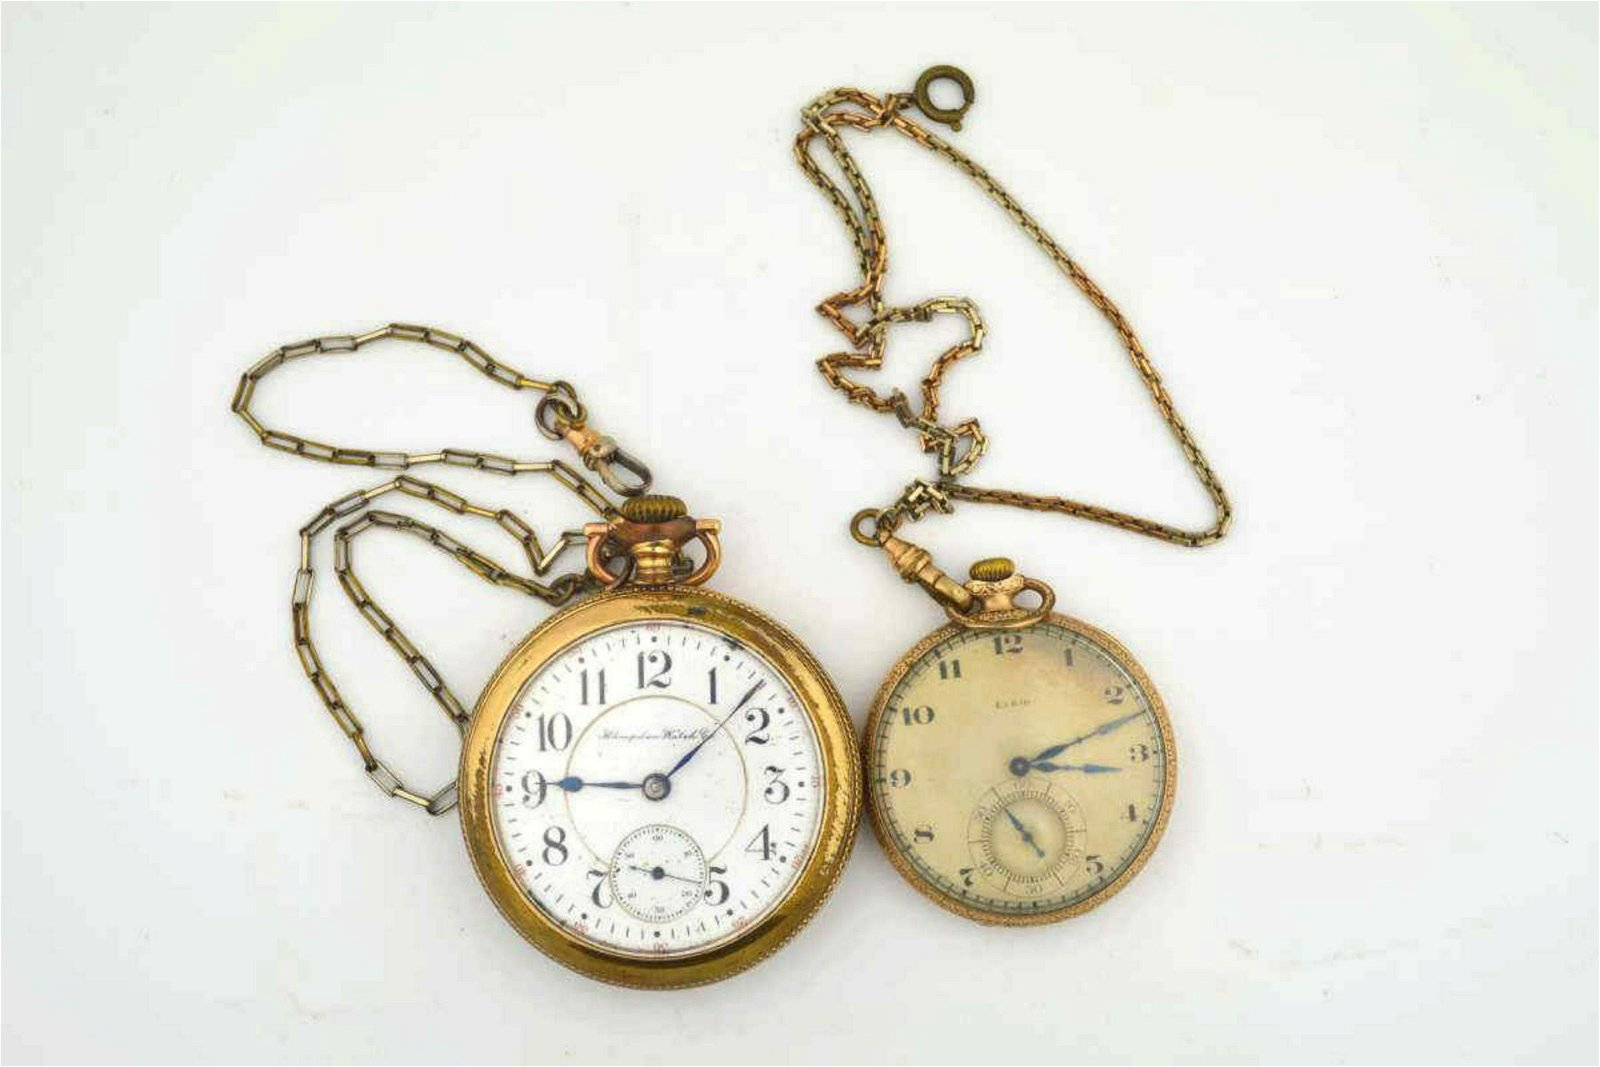 Pair of gold filled pocket watches